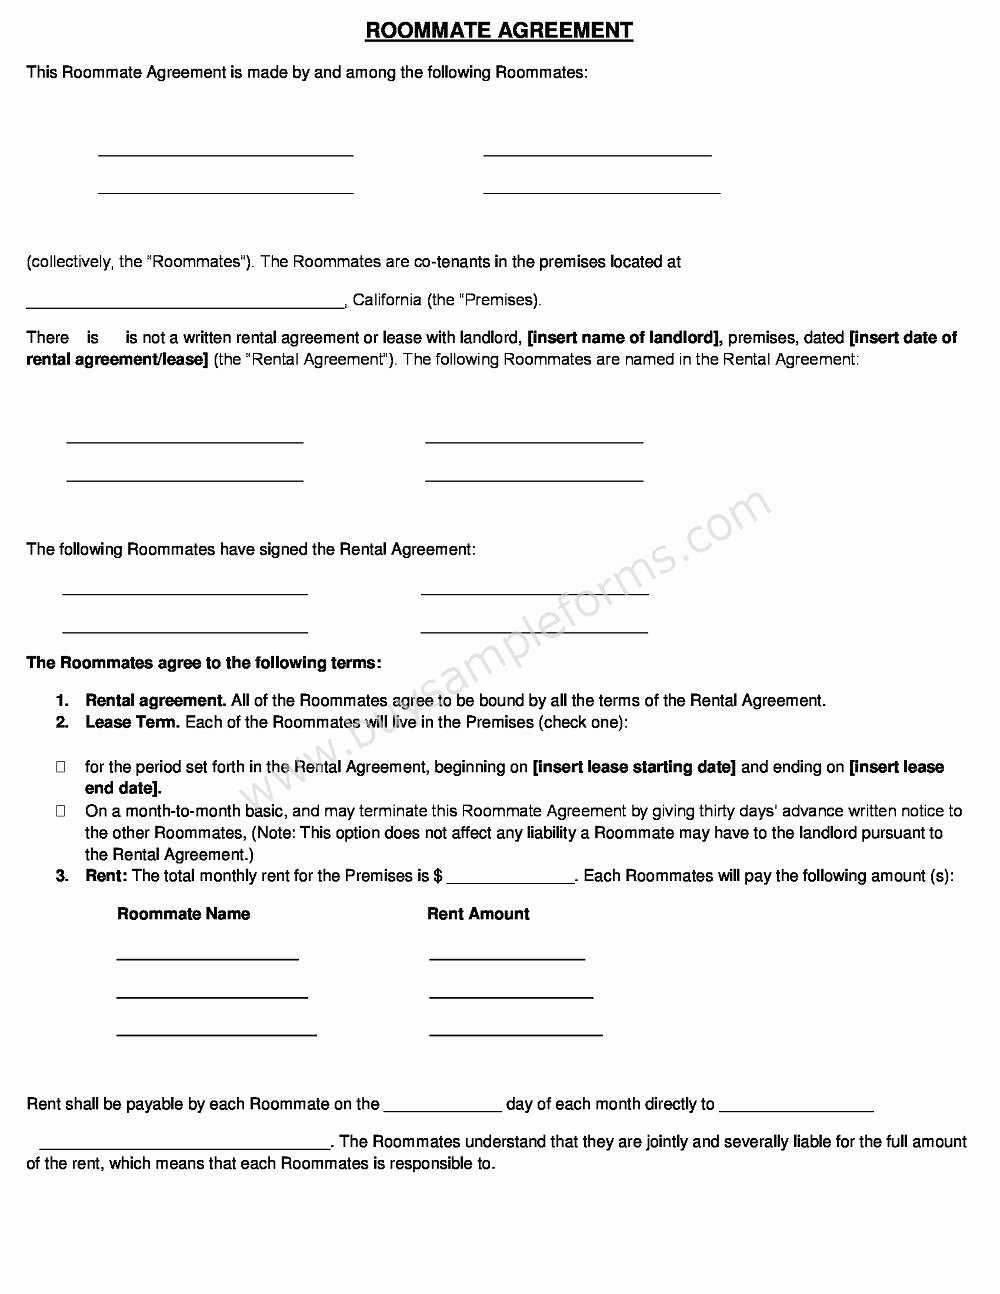 Roommate Rental Agreement Template Unique Roommate Rental Agreement form Template Word Doc Sample